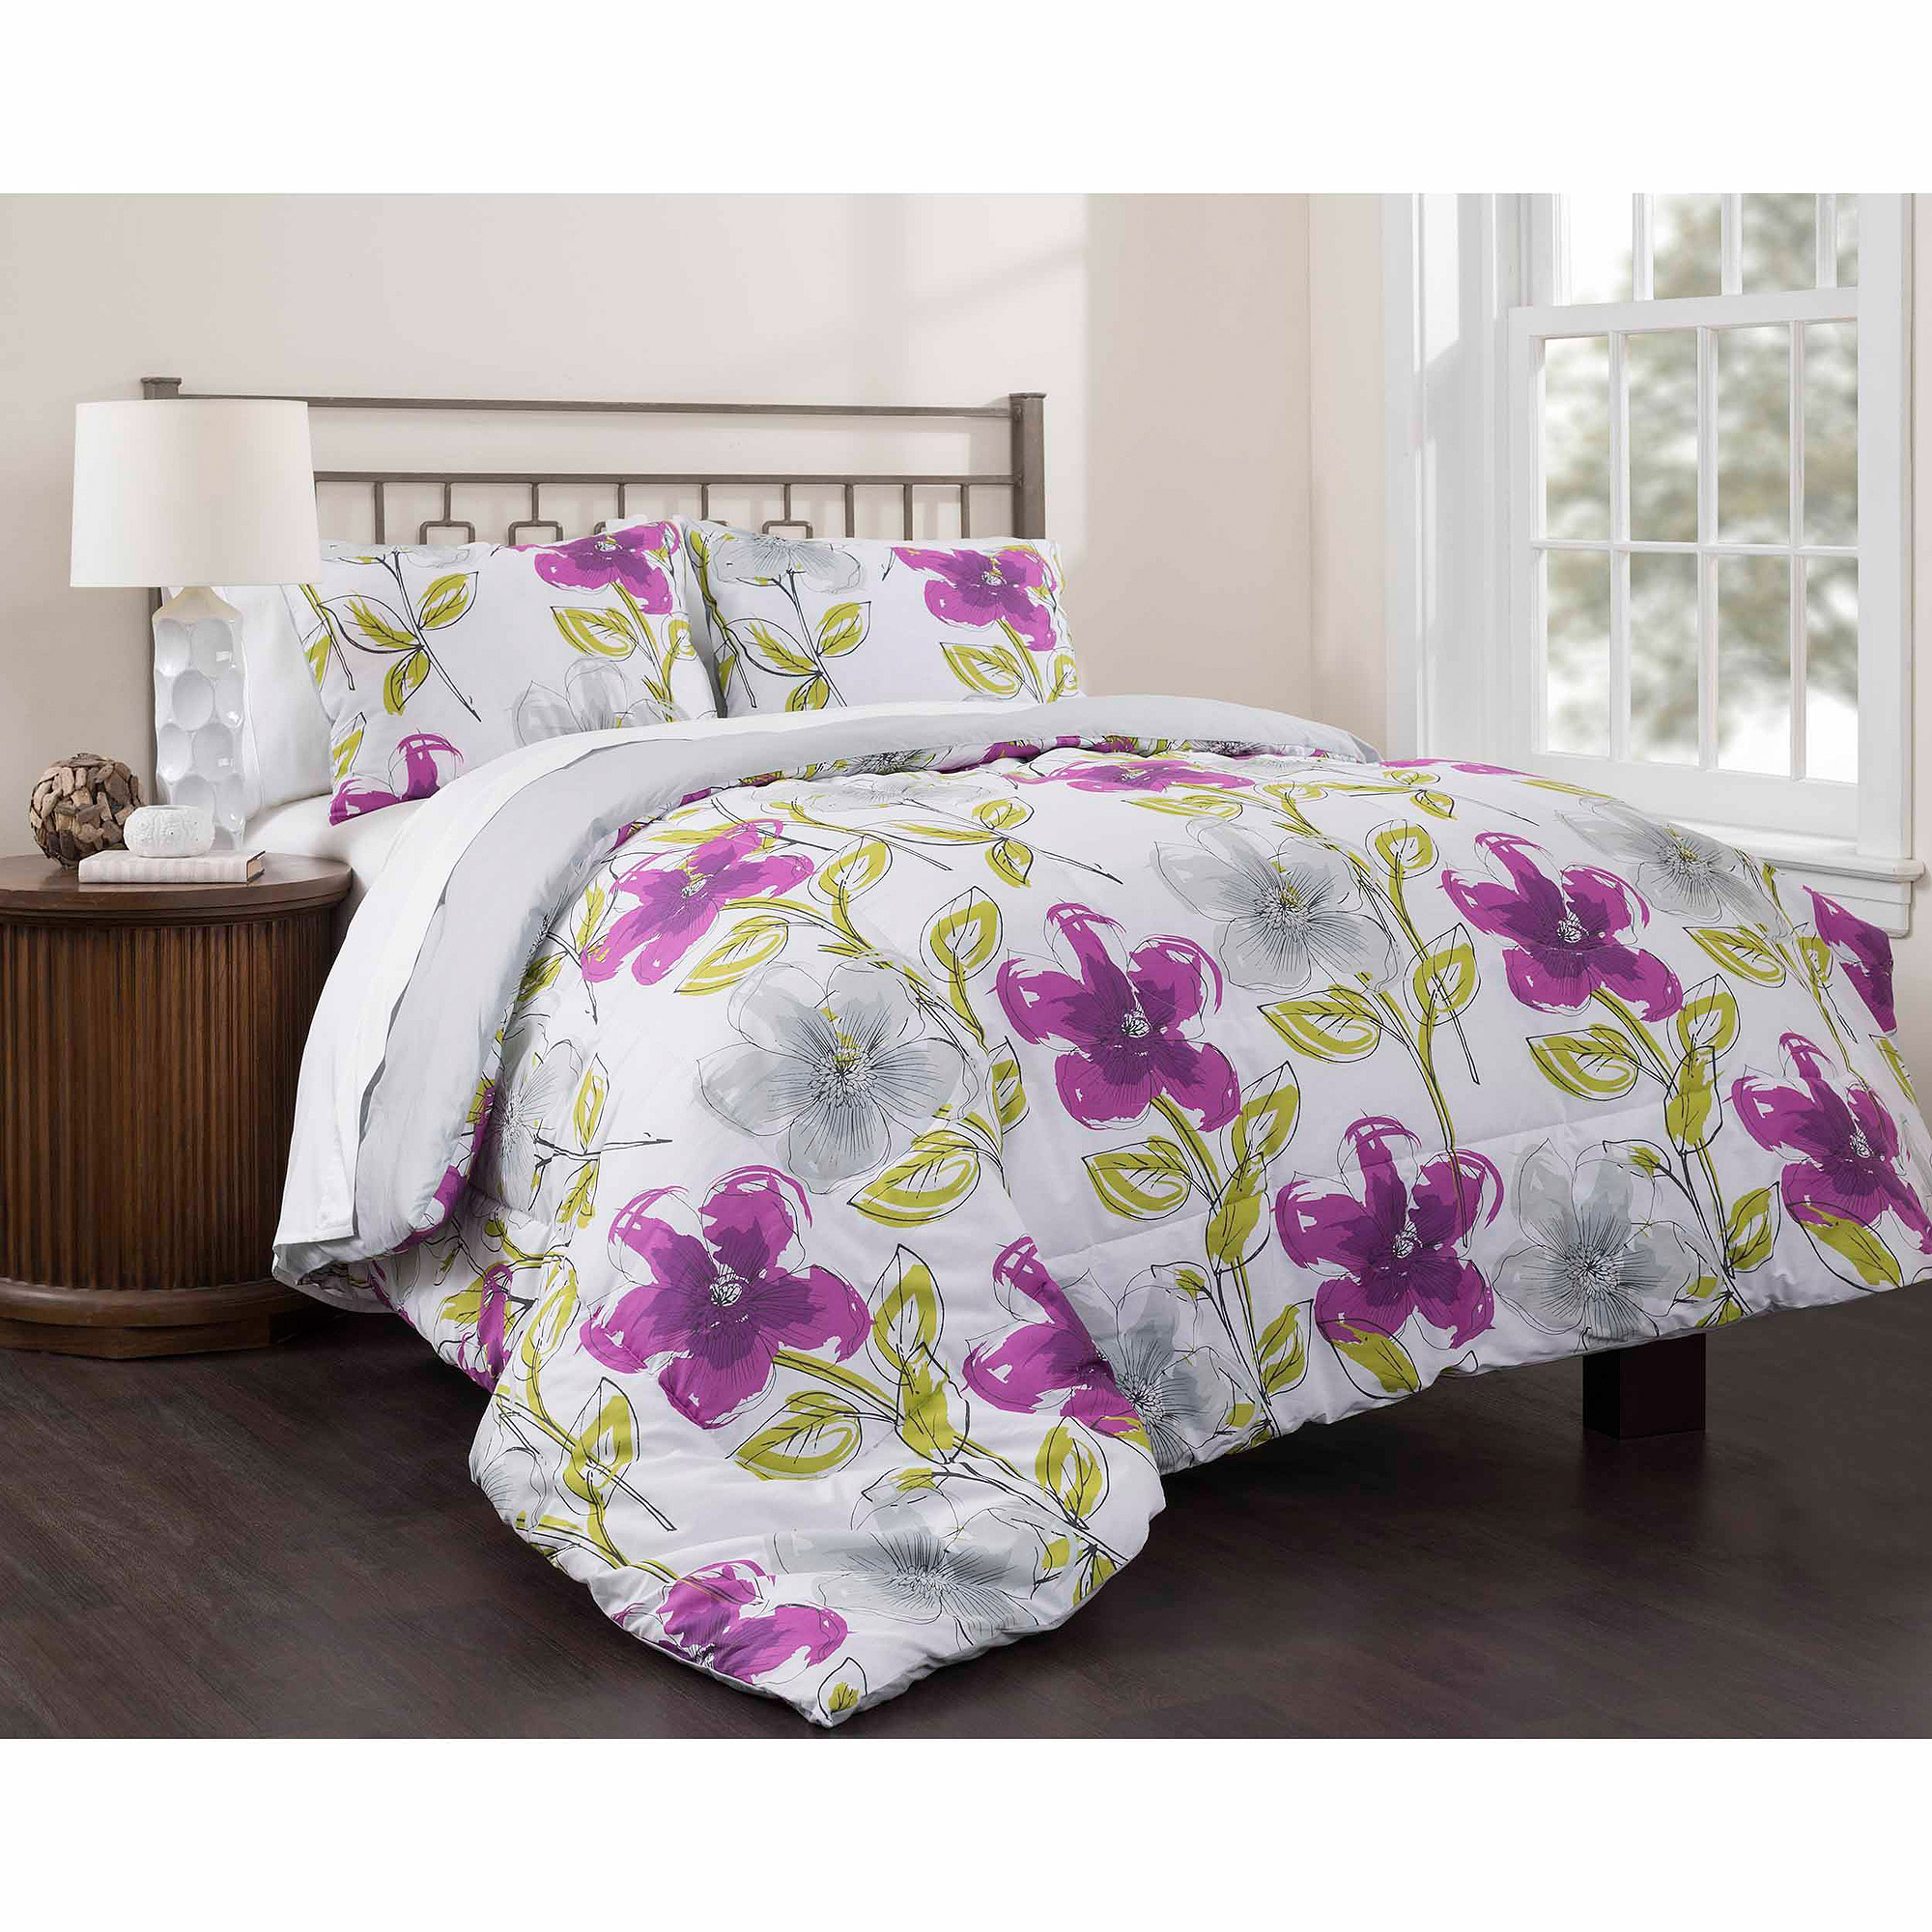 East End Living Dream Garden 3-Piece Bedding Duvet Set, Full Purple